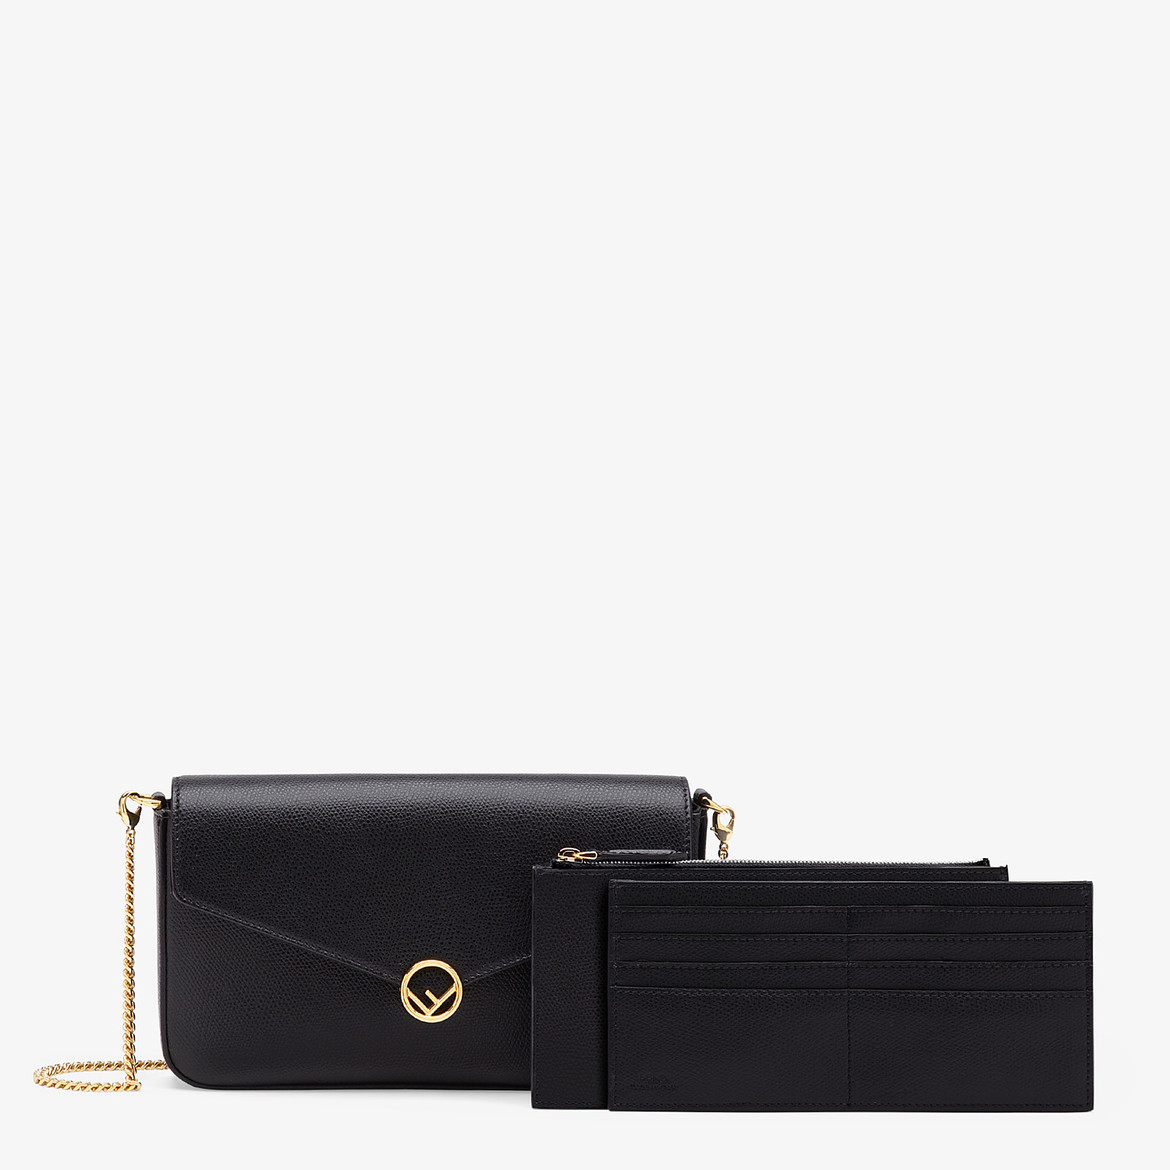 WALLET ON CHAIN WITH POUCHES Black leather minibag Code: 8BS032A18BF0KUR  HK$9,600